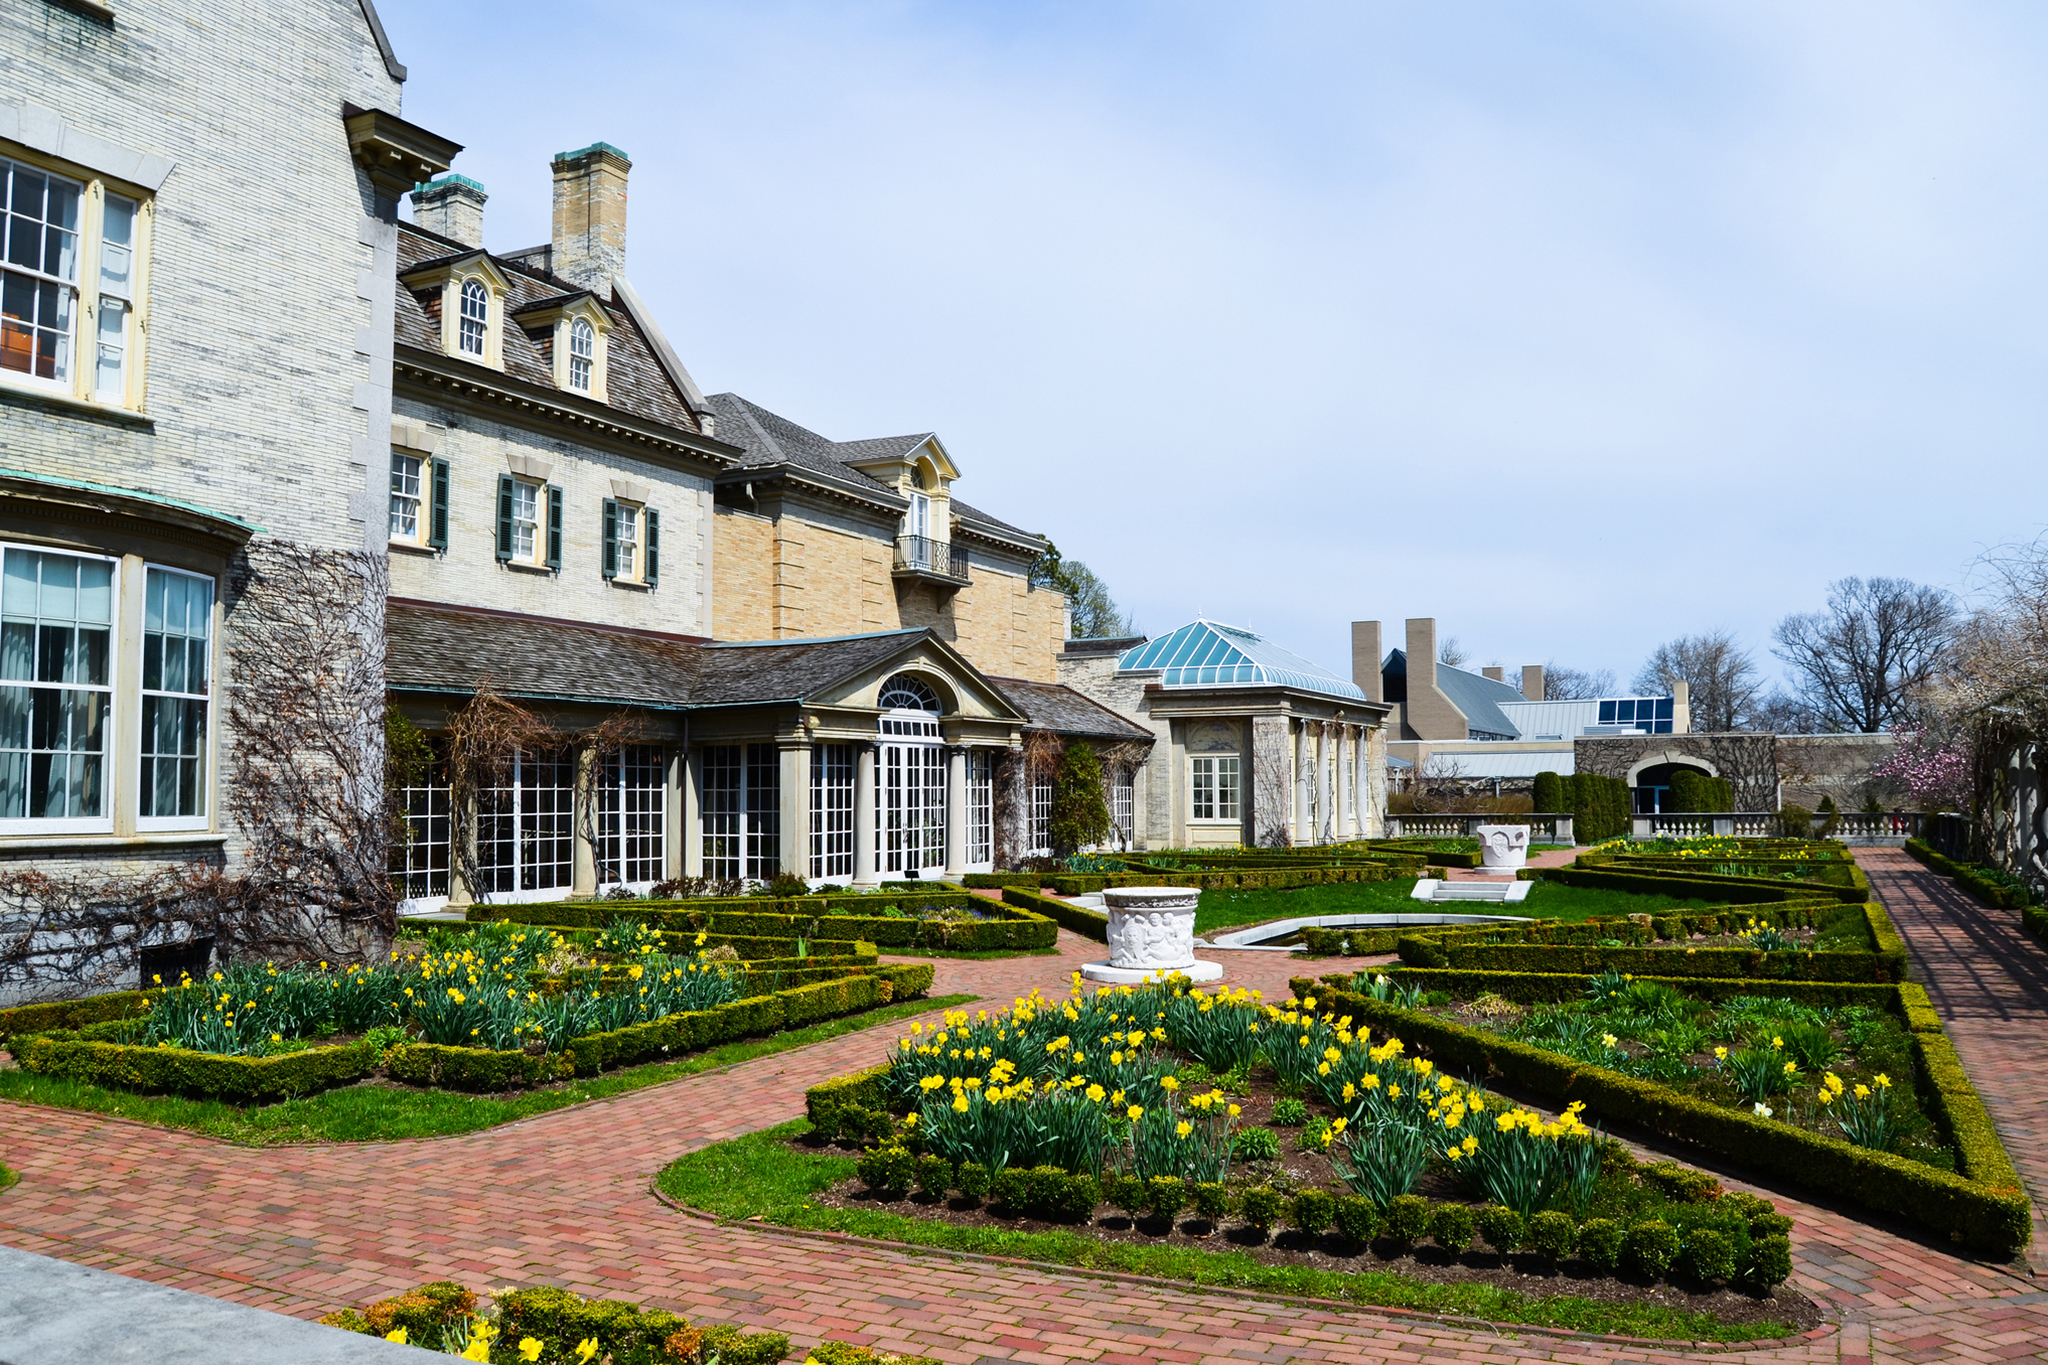 George Eastman House in Rochester, NY